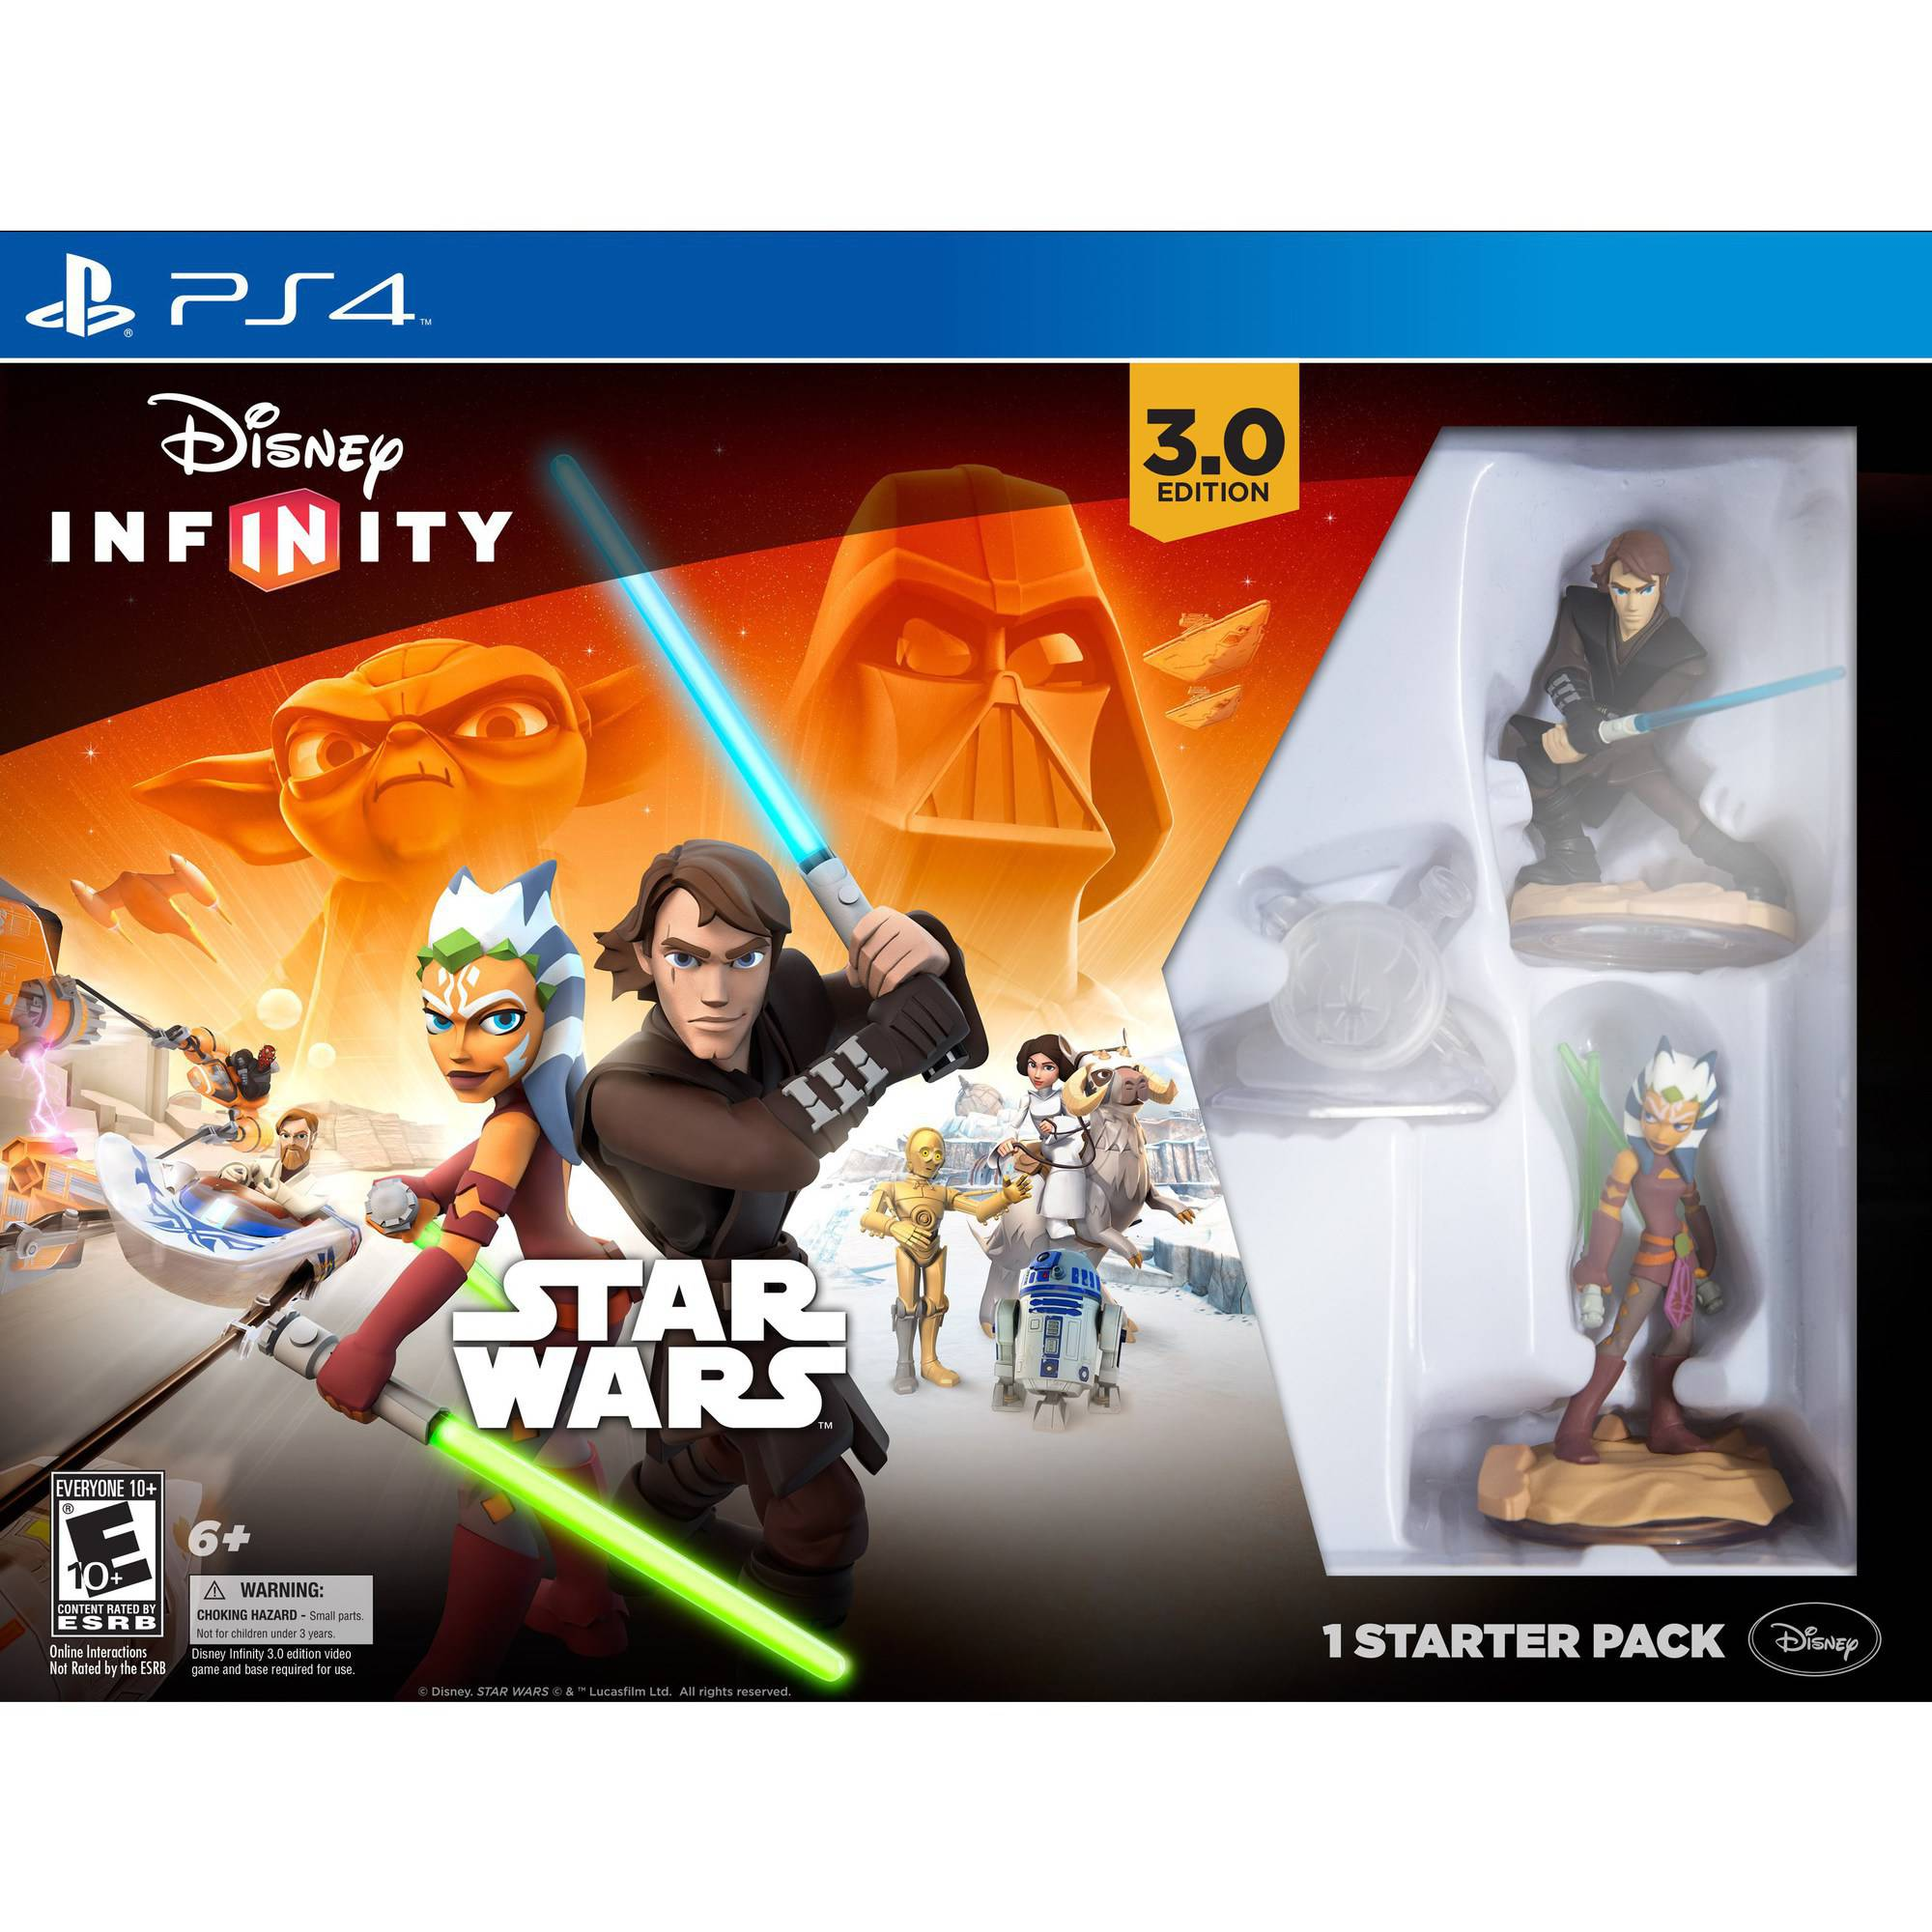 Disney Infinity 3.0 Edition Starter Pack (PS4)